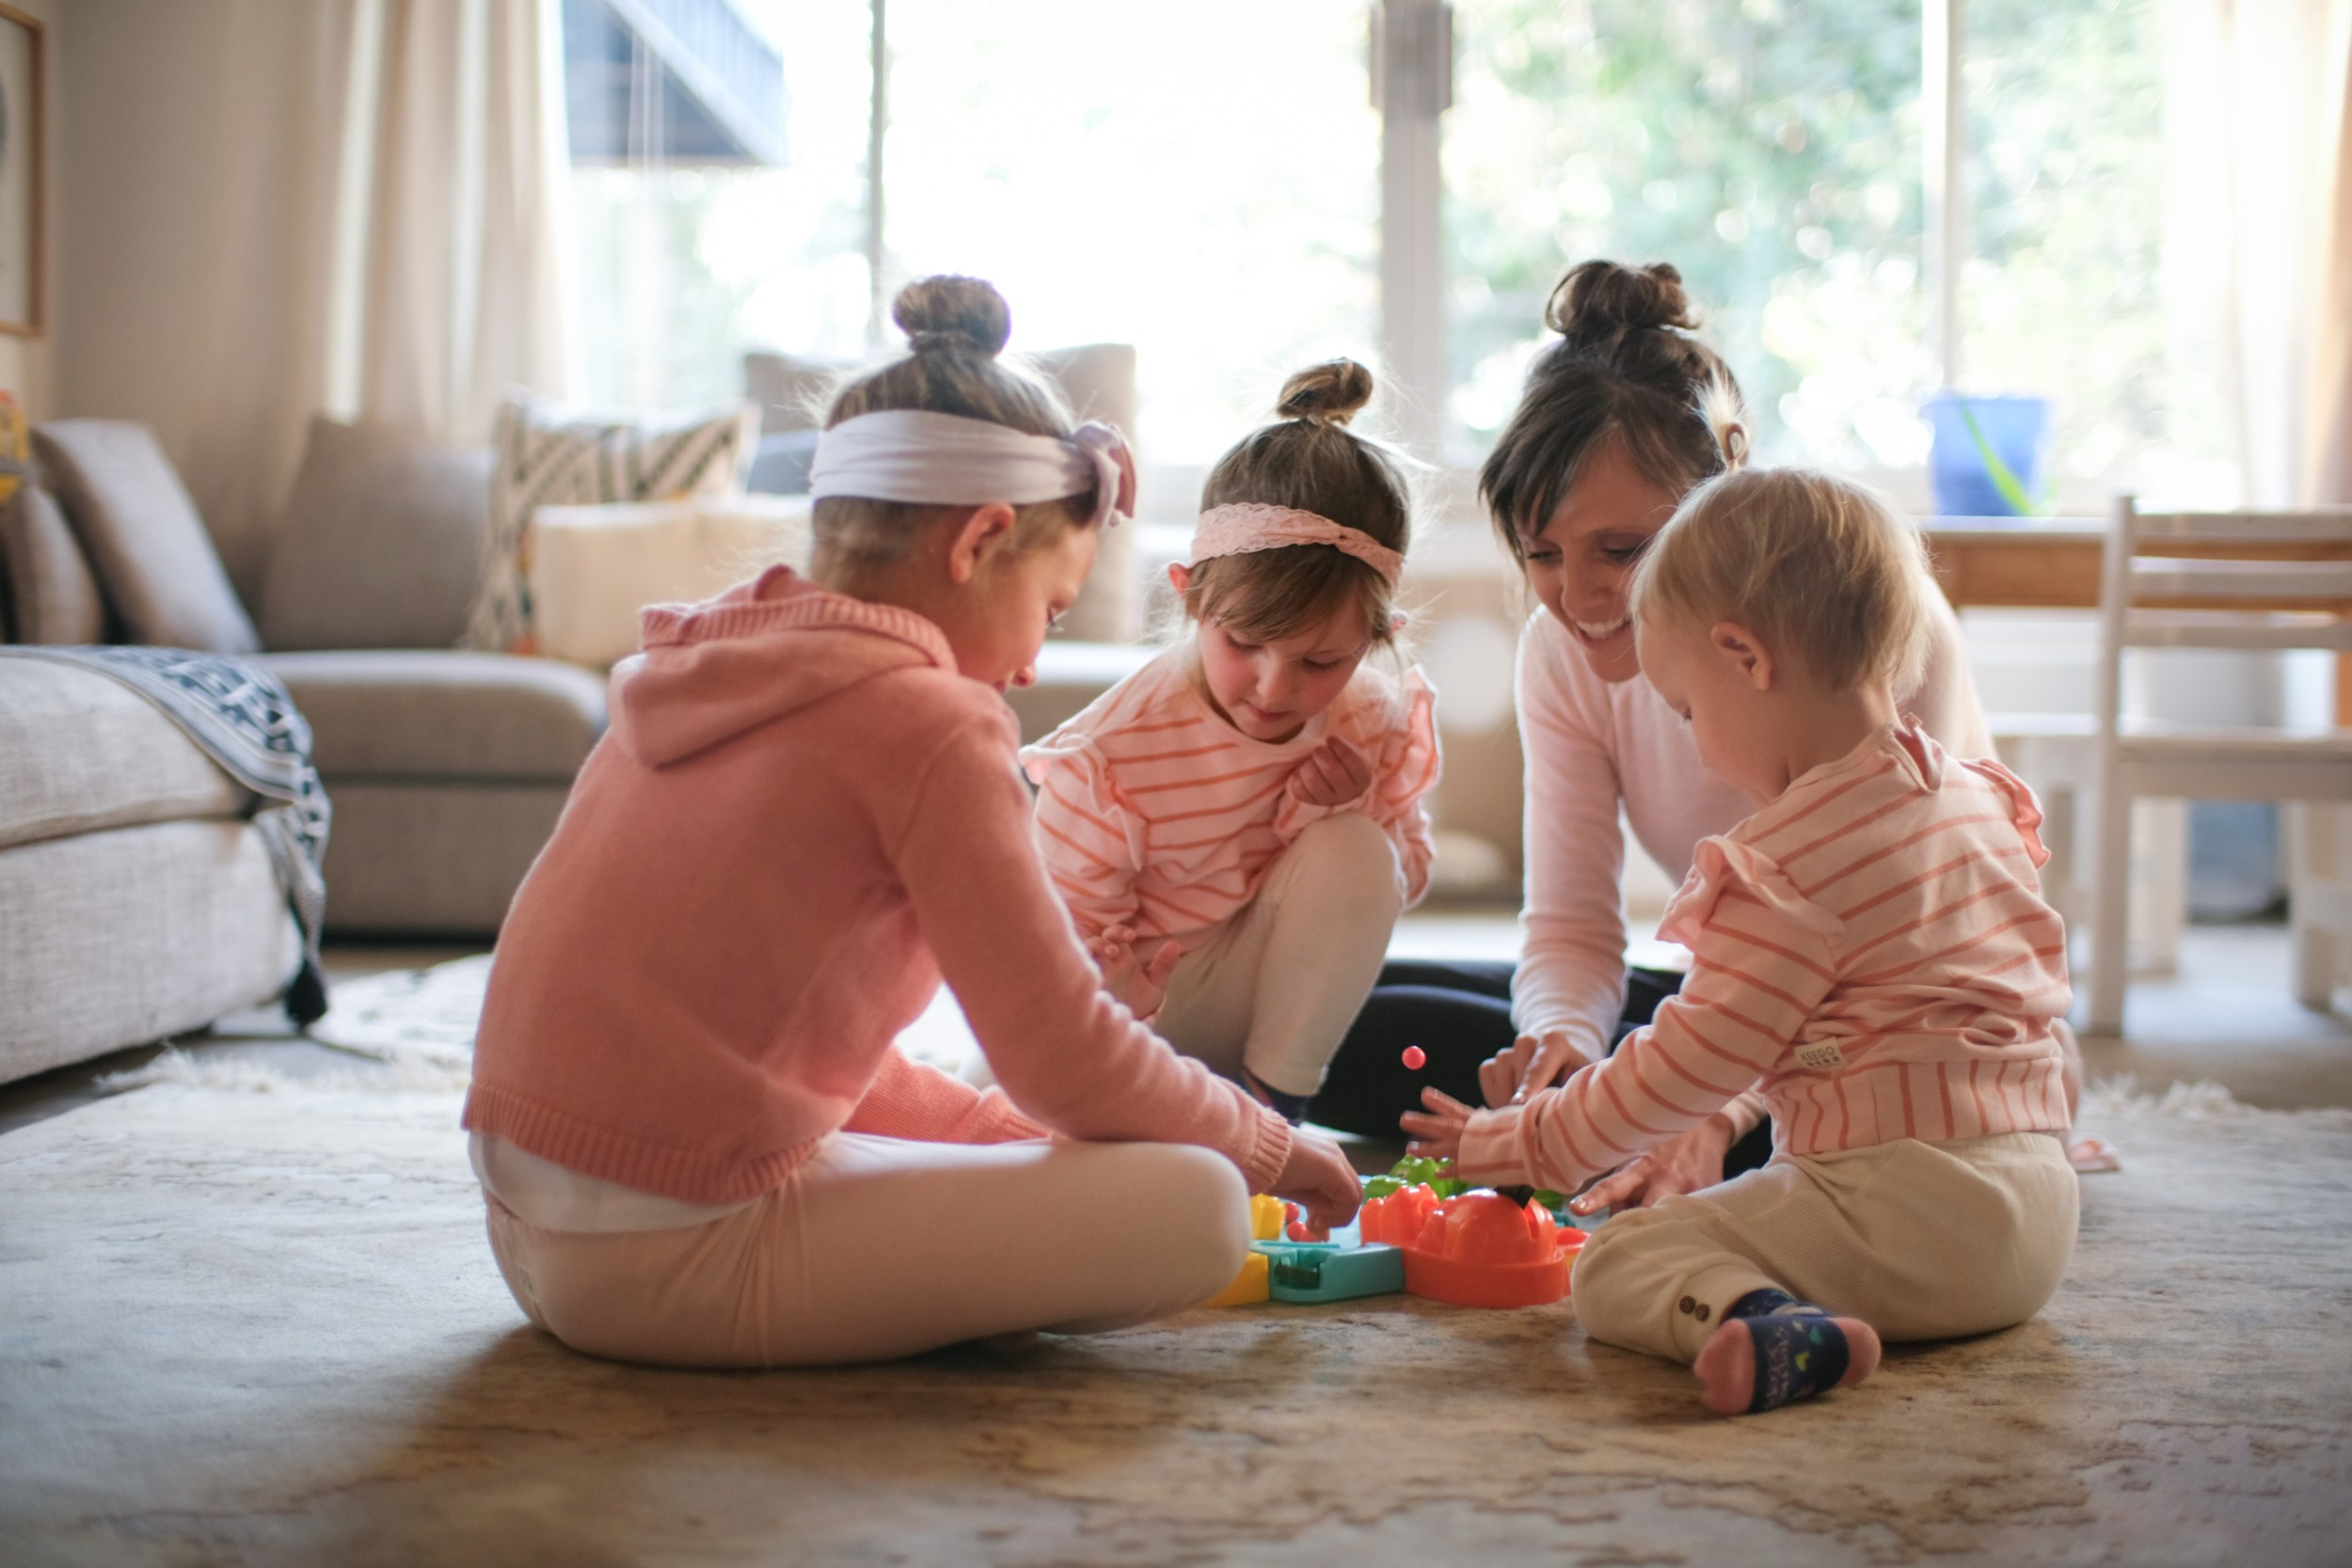 Covid-19 survival guide for mom: 60+ Activities to do with the Kids at home